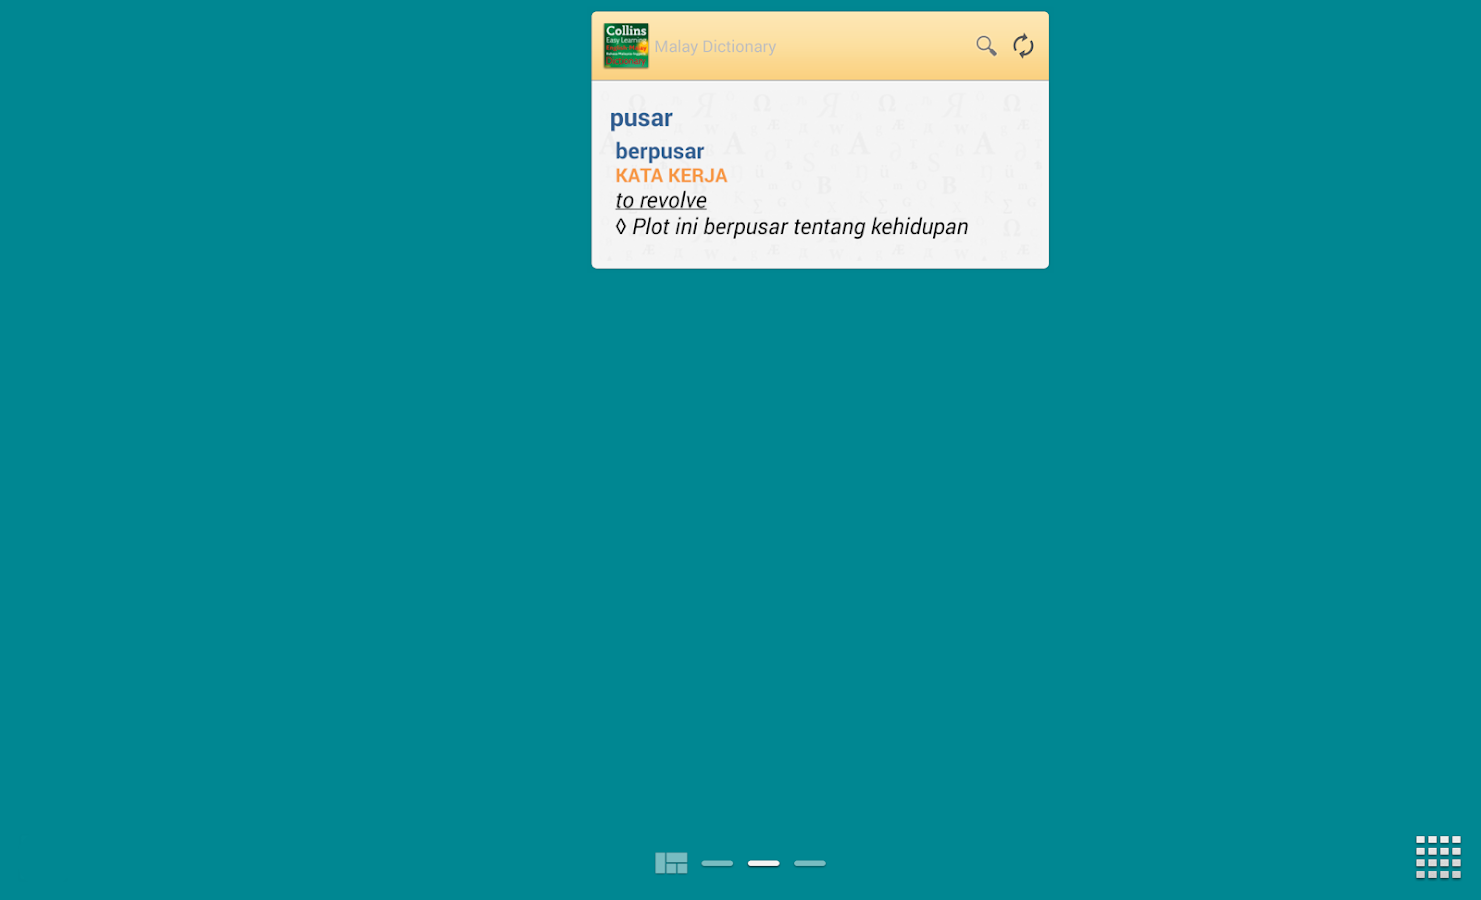 Collins Malay Dictionary TR - screenshot